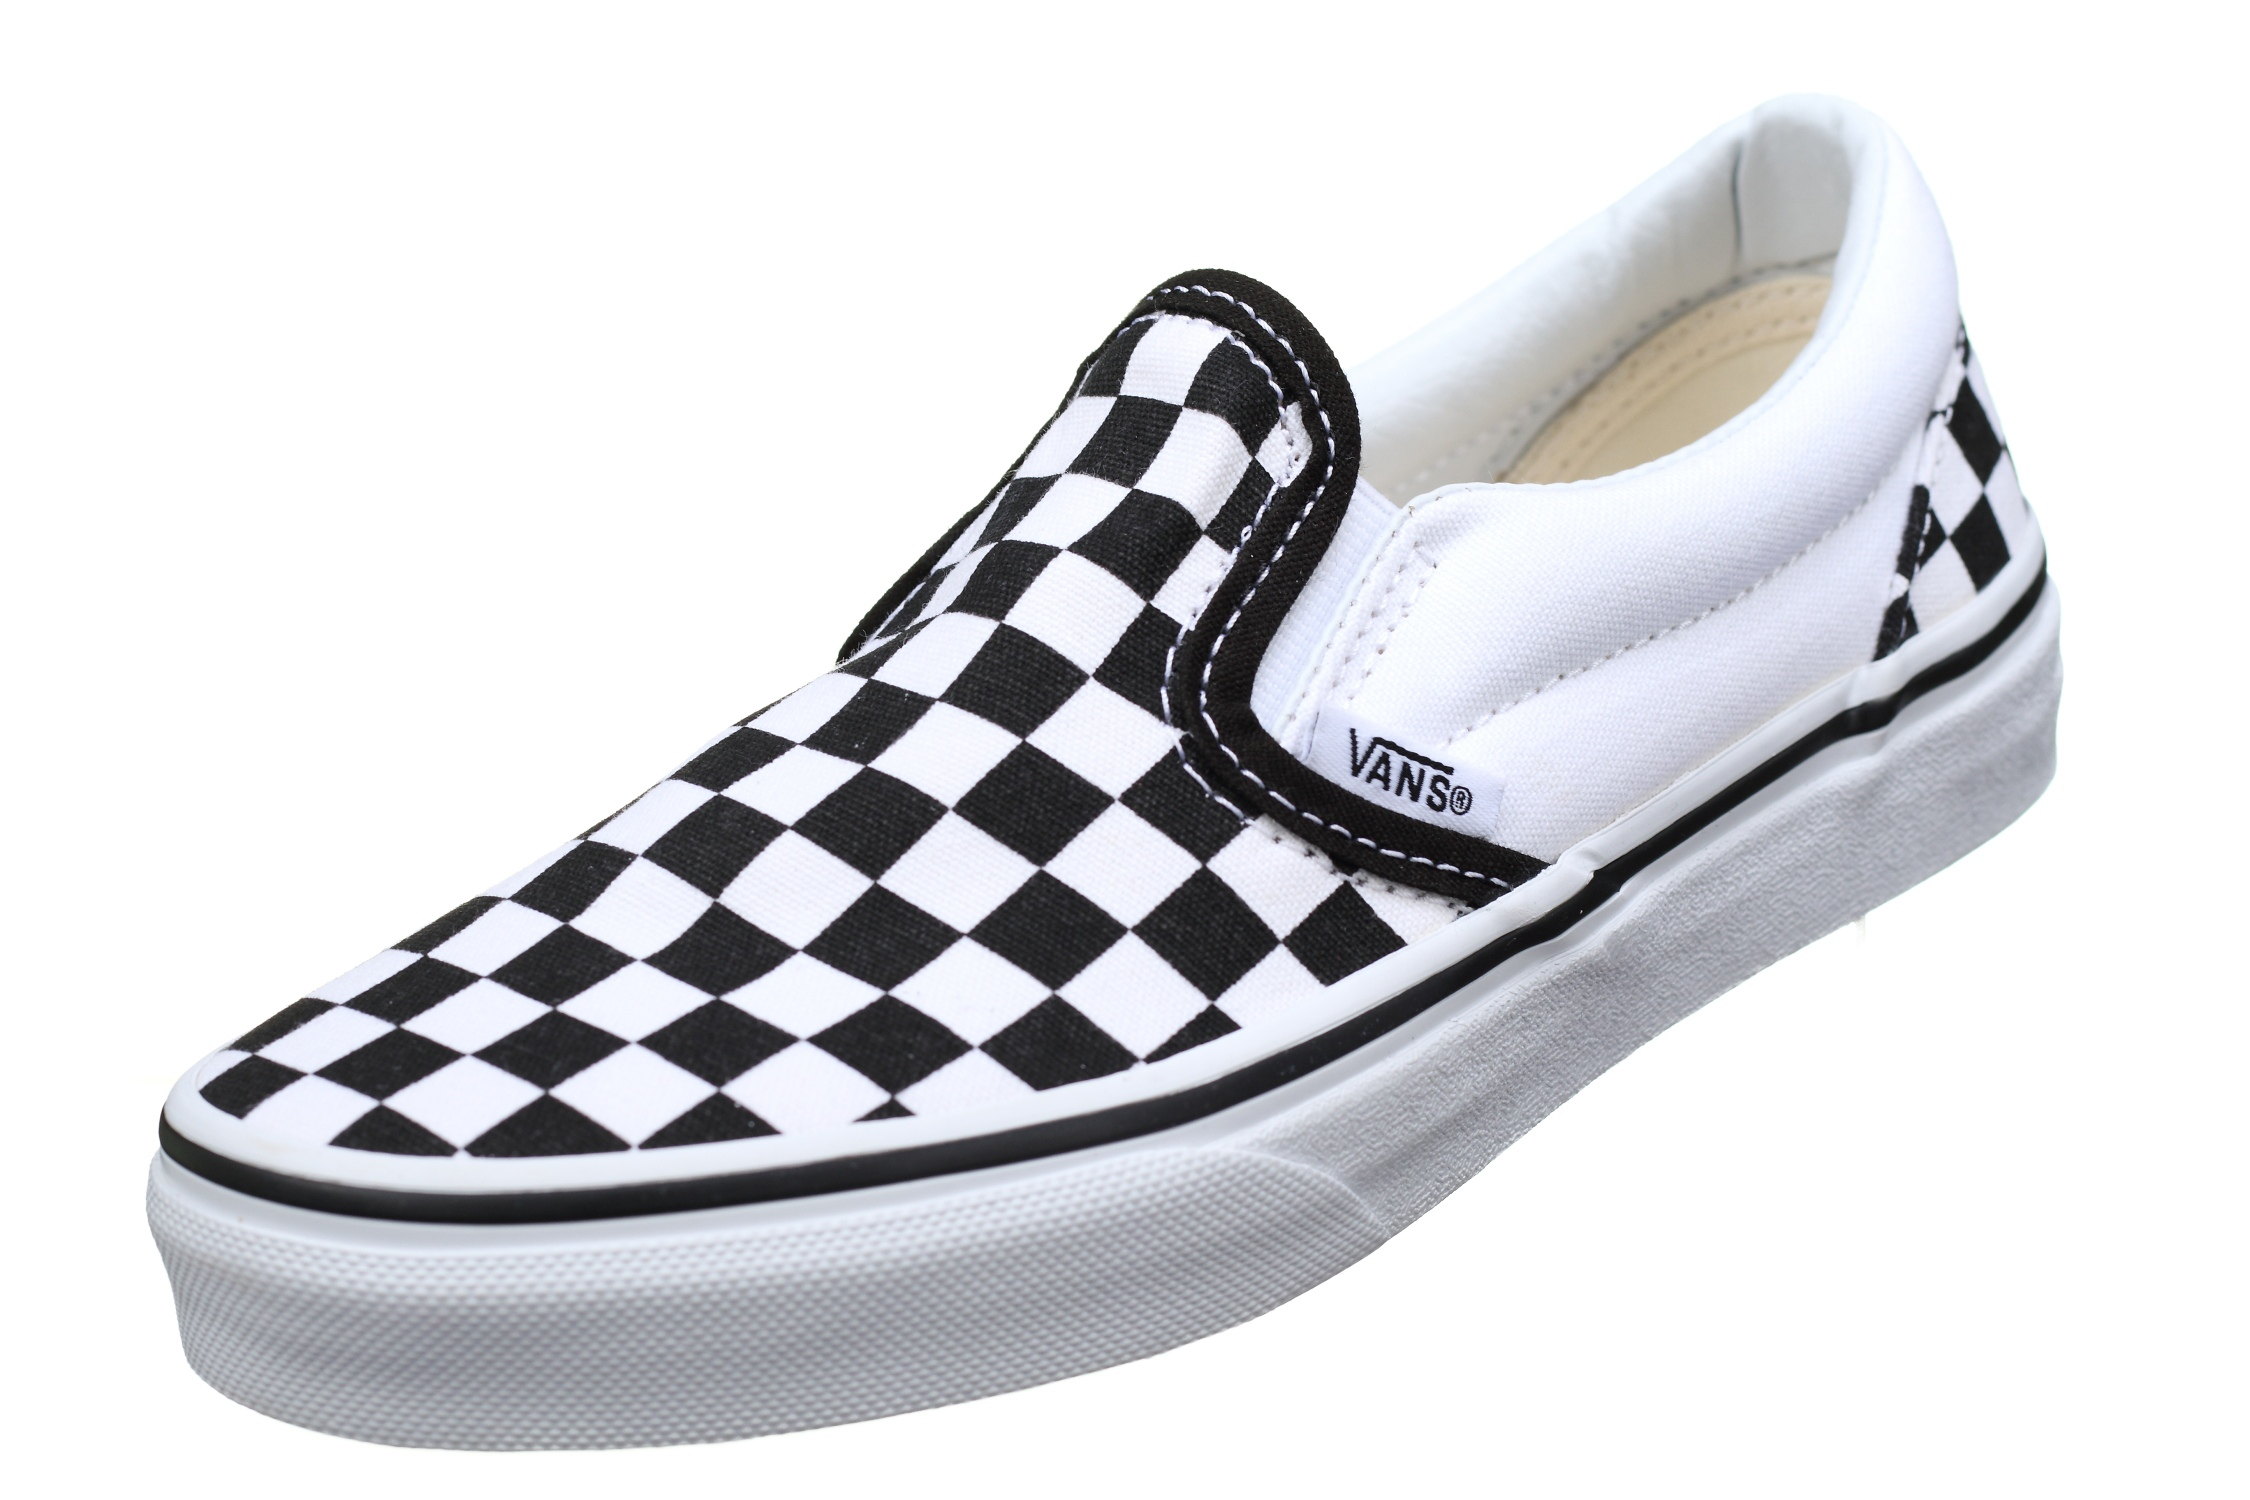 http://www.leadermode.com/153204/vans-classic-slip-on-j-vzbu5gu-black-white.jpg